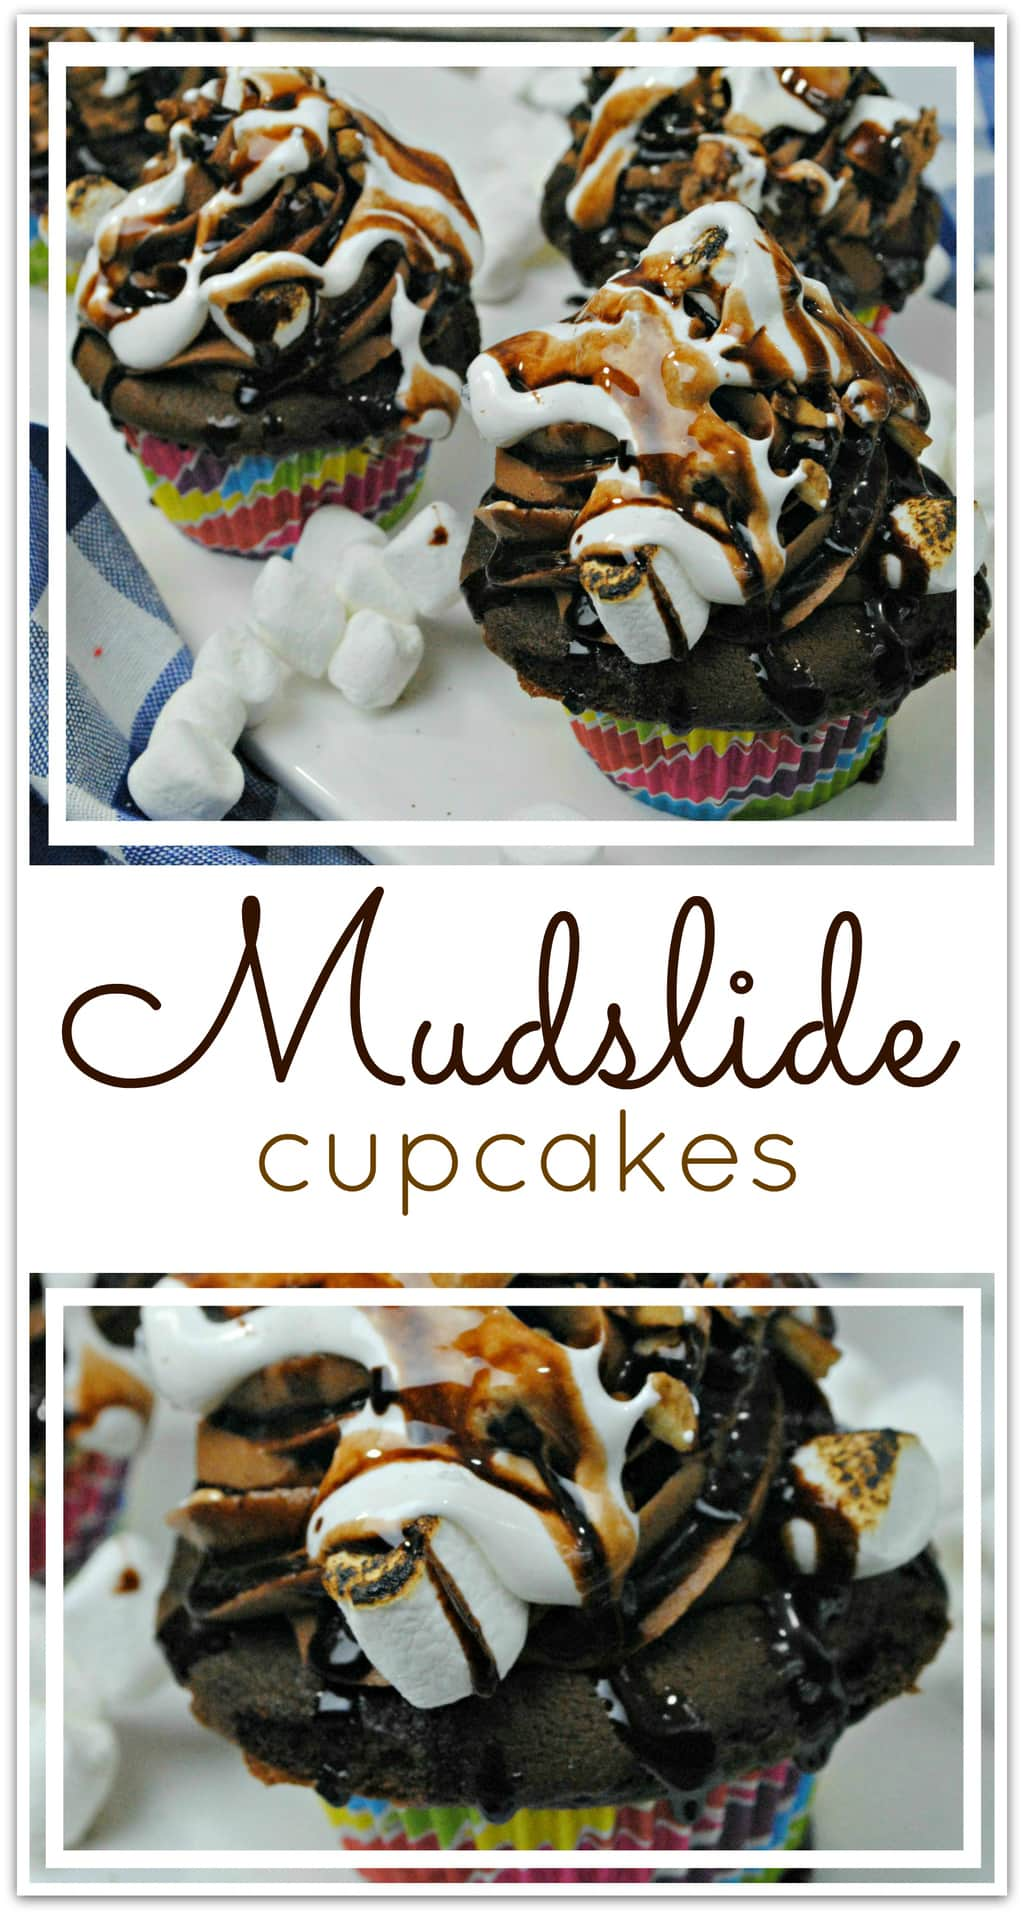 What could be better than Mudslide Cupcakes? There is one dessert I always want to order when it's on the menu, and that's a mudslide. However it's made, you know it's going to be good, right? I mean, when you combine chocolate, marshmallow fluff, toasted marshmallows, and crunchy walnuts, you just can't go wrong.